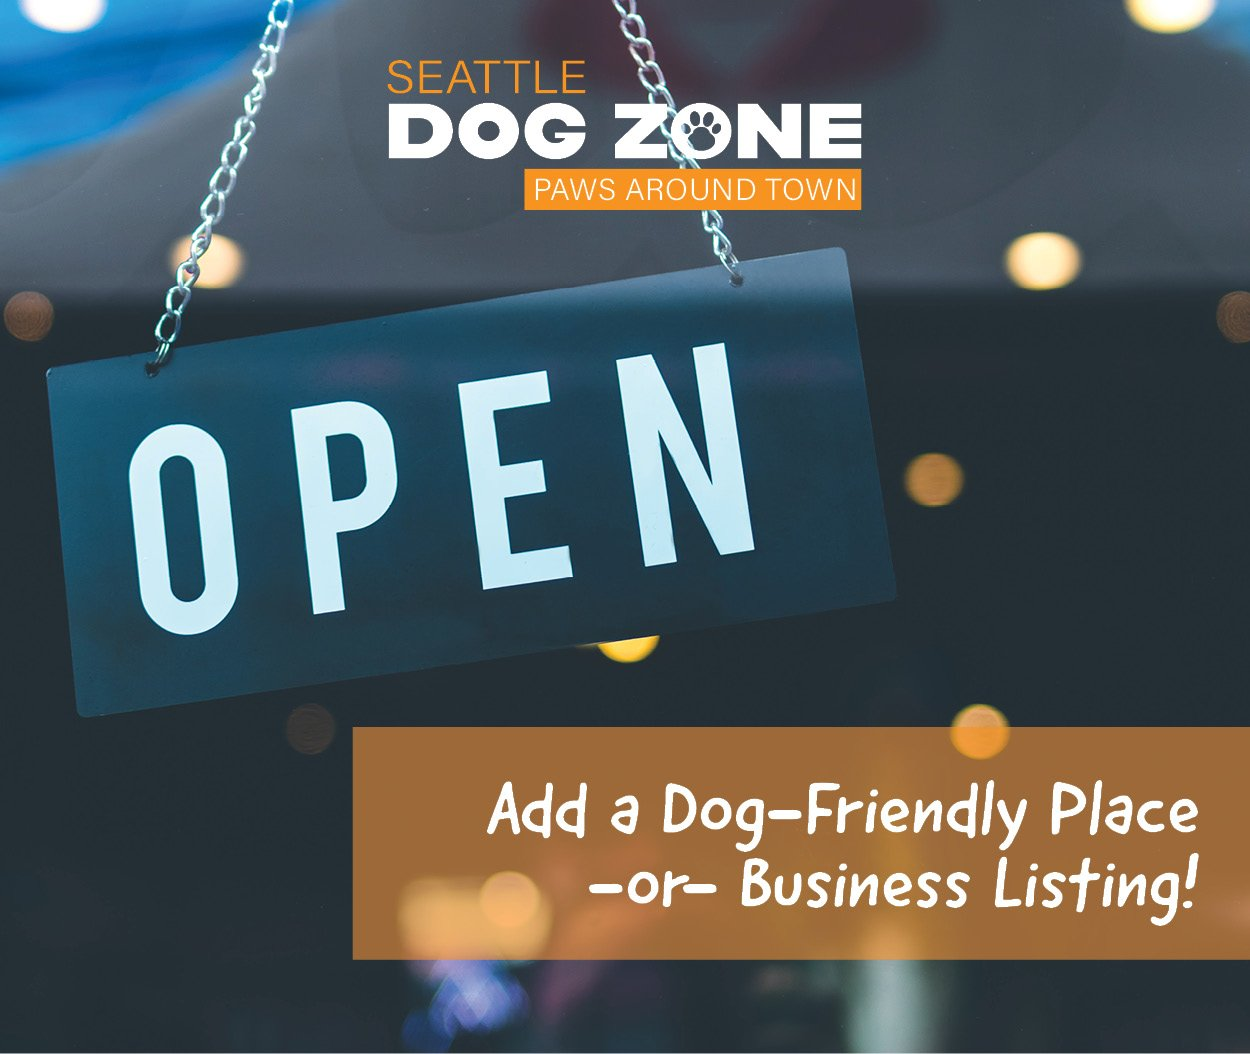 Open Sign - Add a Dog-Friendly Place or Business Listing to Seattle Dog Zone